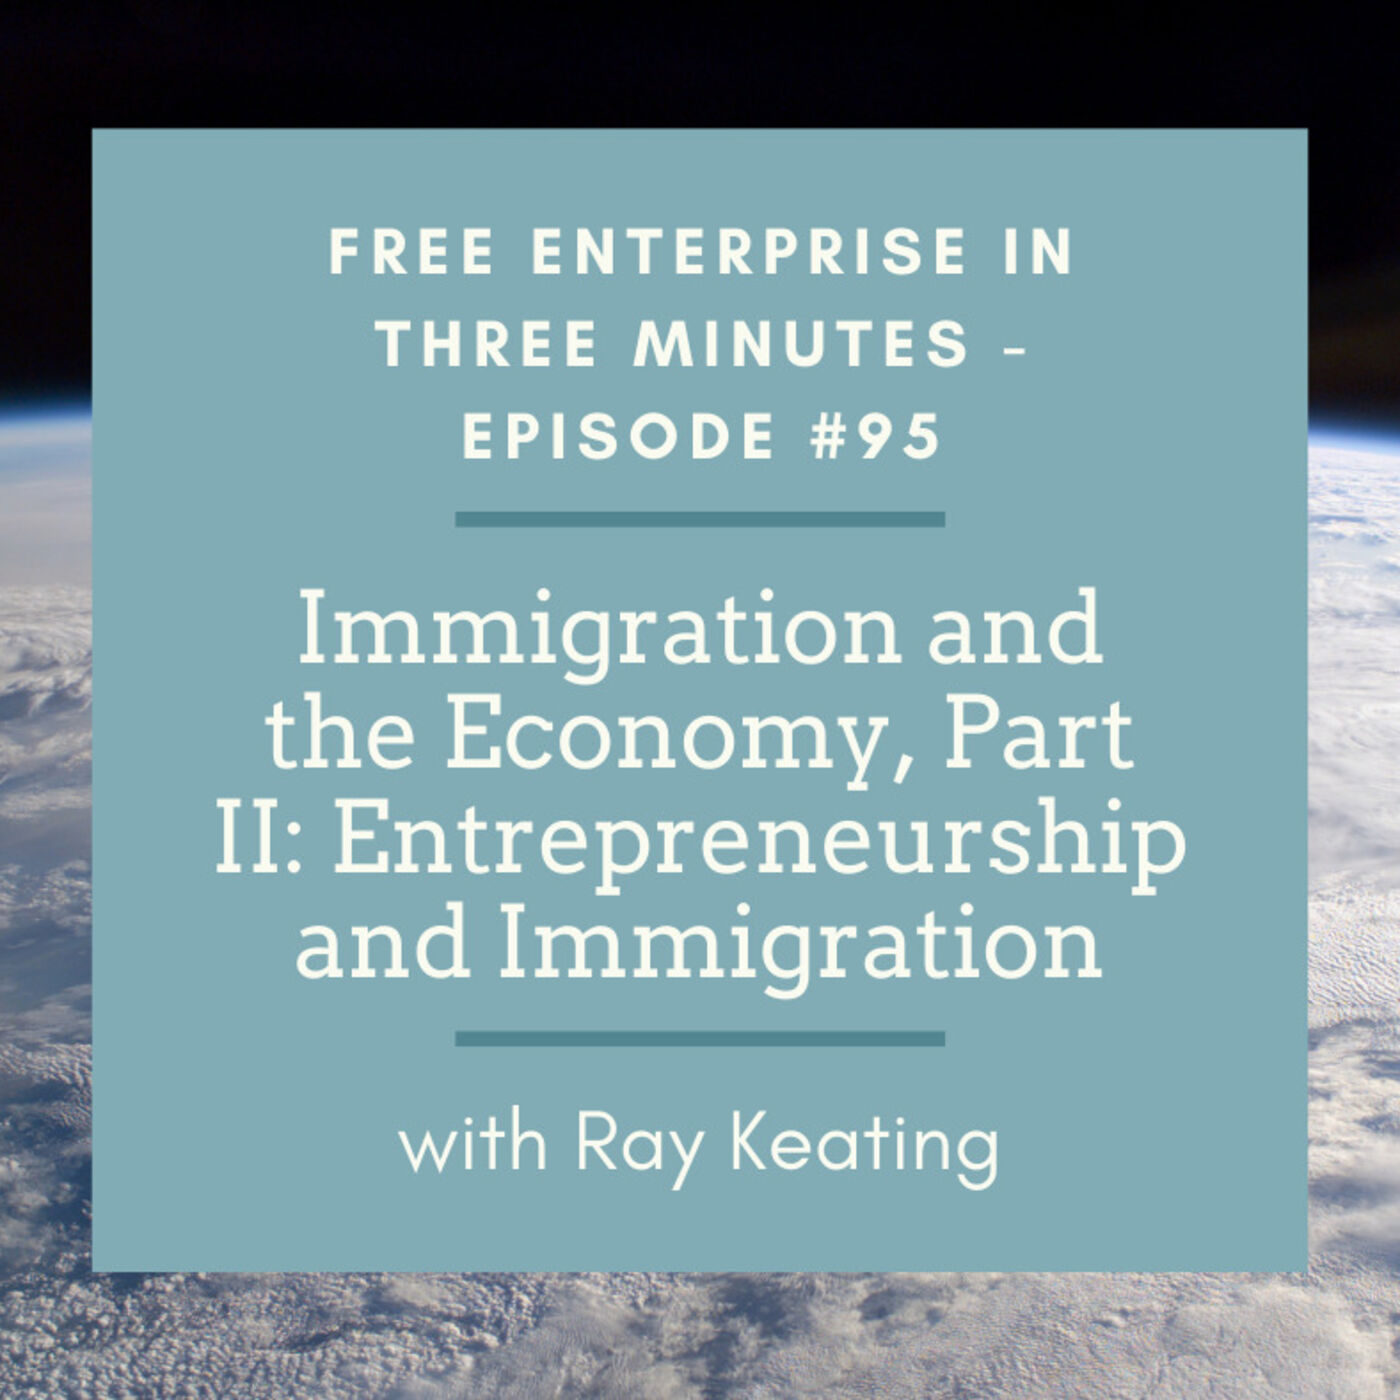 Episode #95: Immigration and the Economy, Part II: Entrepreneurship and Immigration